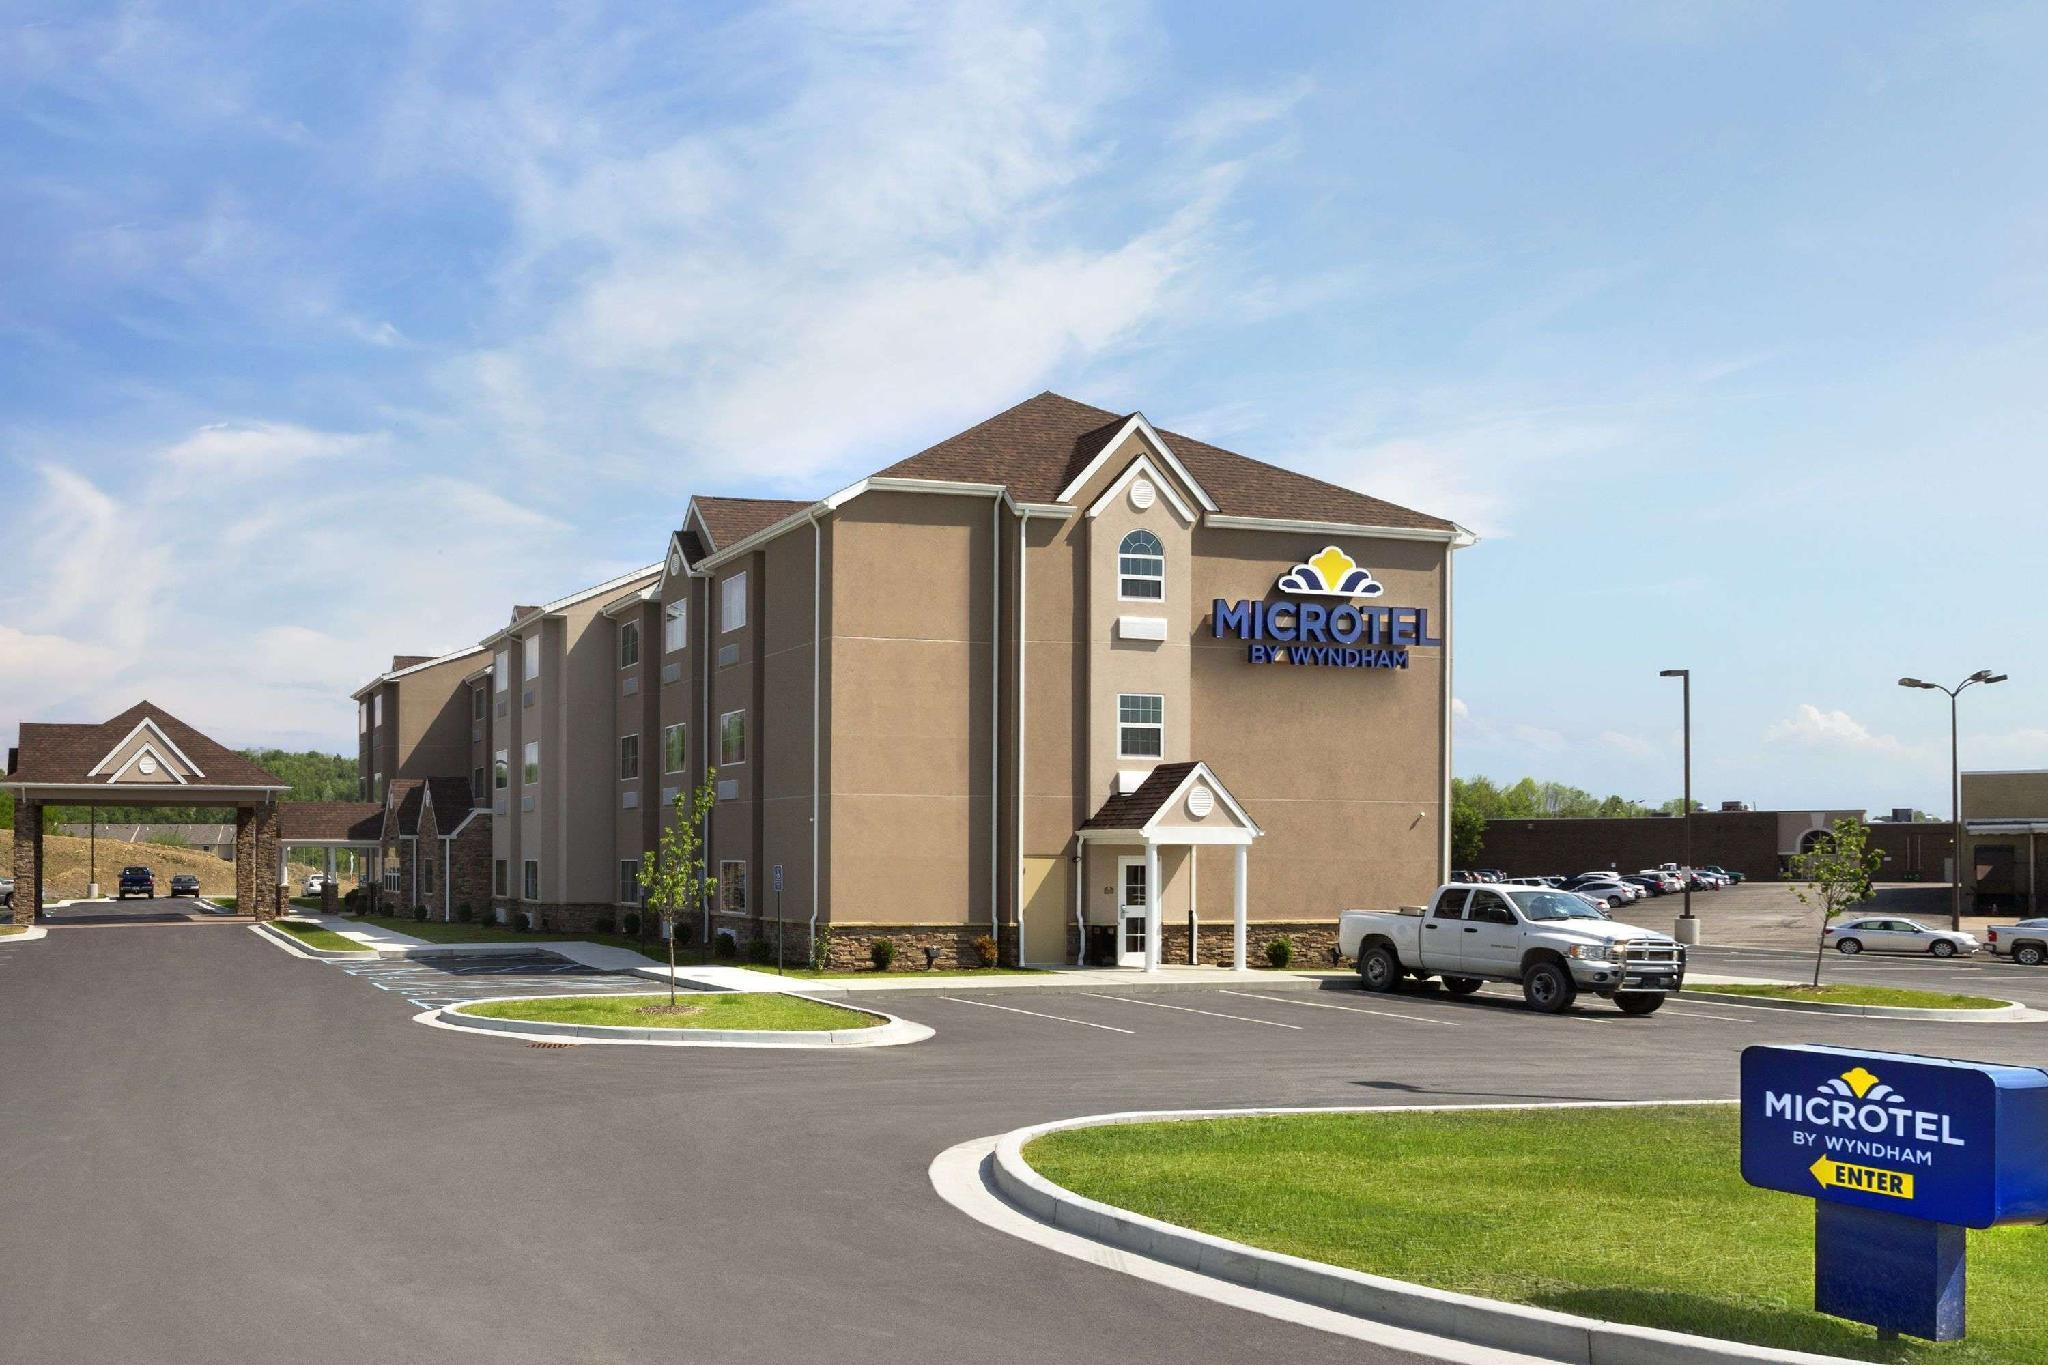 Microtel Inn And Suites By Wyndham Fairmont